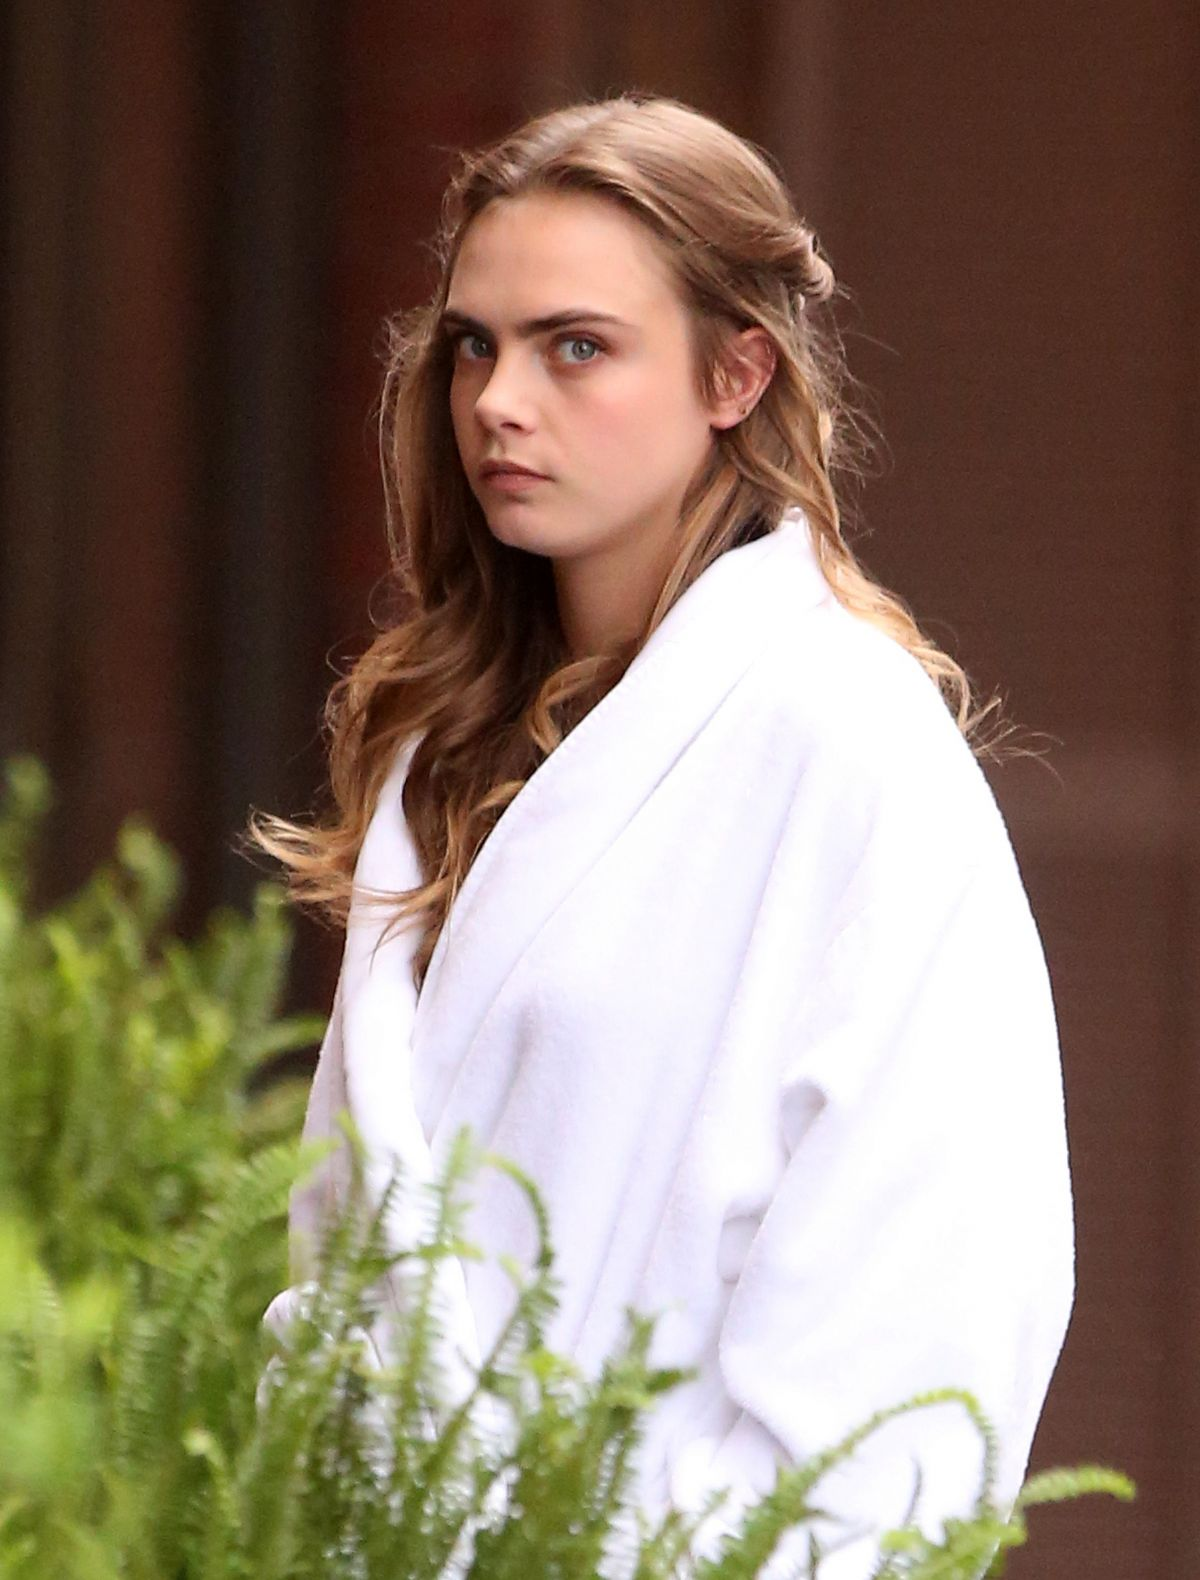 CARA DELEVINGNE on the Set of Suicide Squad in Toronto 05/30/2015